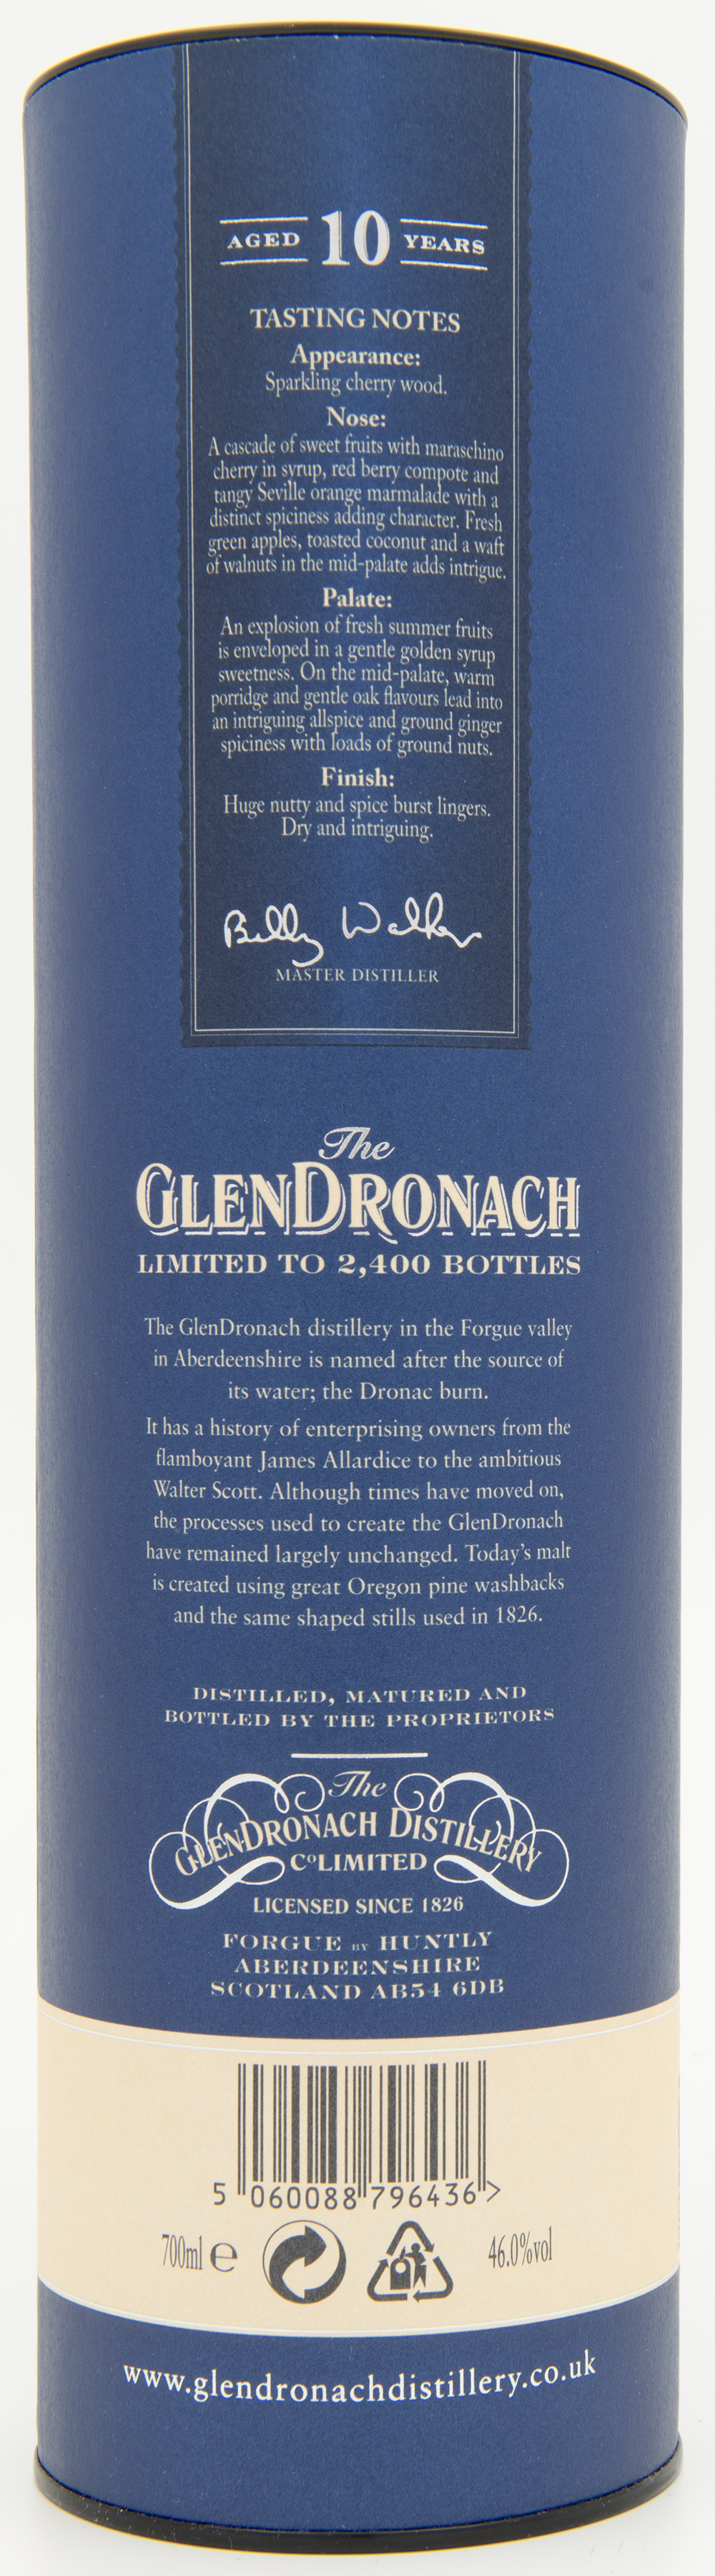 Billede: DSC_4820 - The Glendronach 10 - tube back.jpg